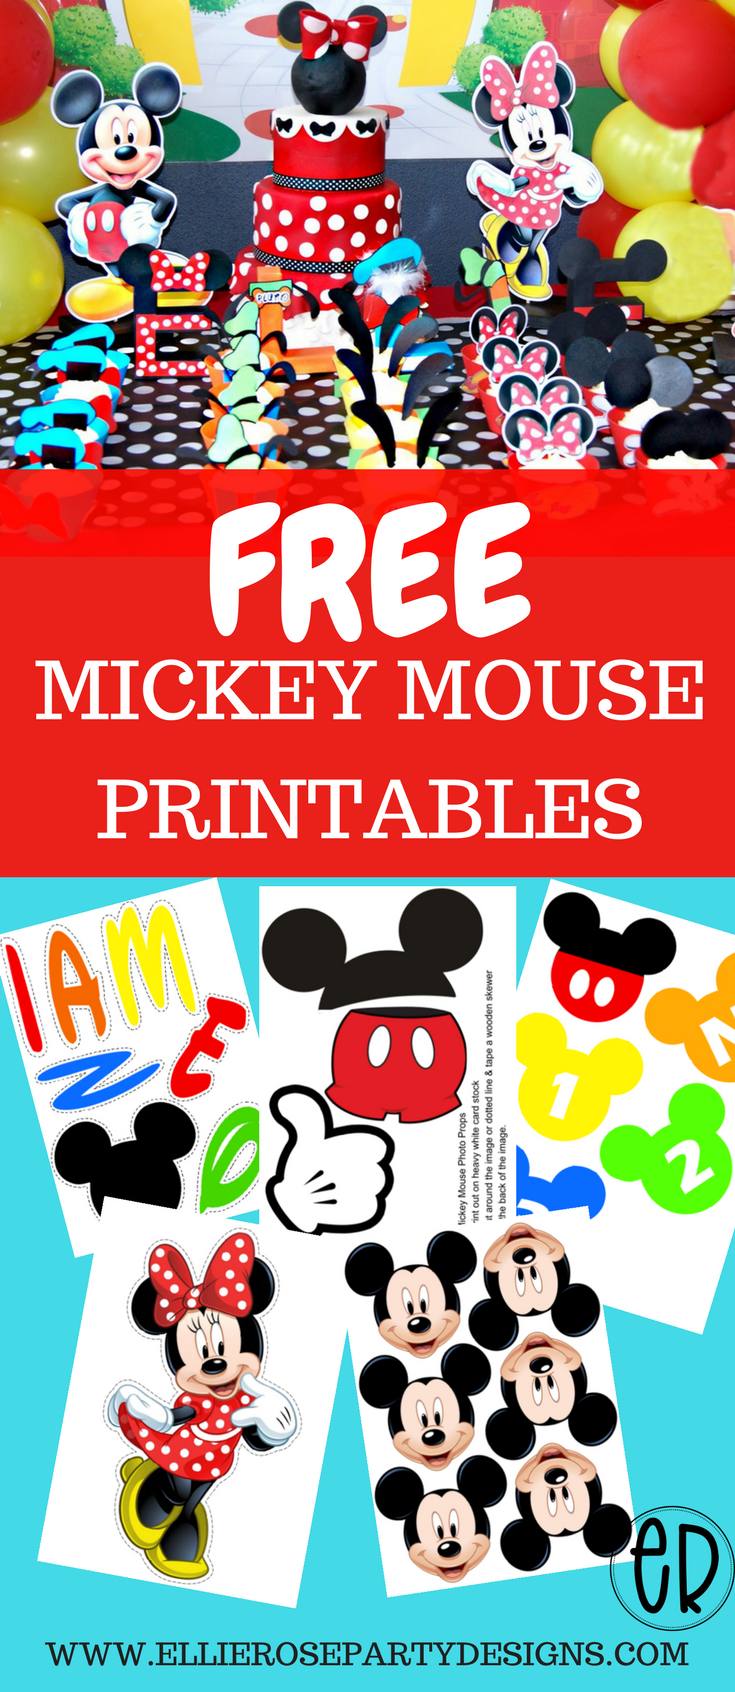 FREE Mickey Mouse printables and party ideas.  DIY decorations for boys and girls #mickeymousebirthdaypartyideas1st